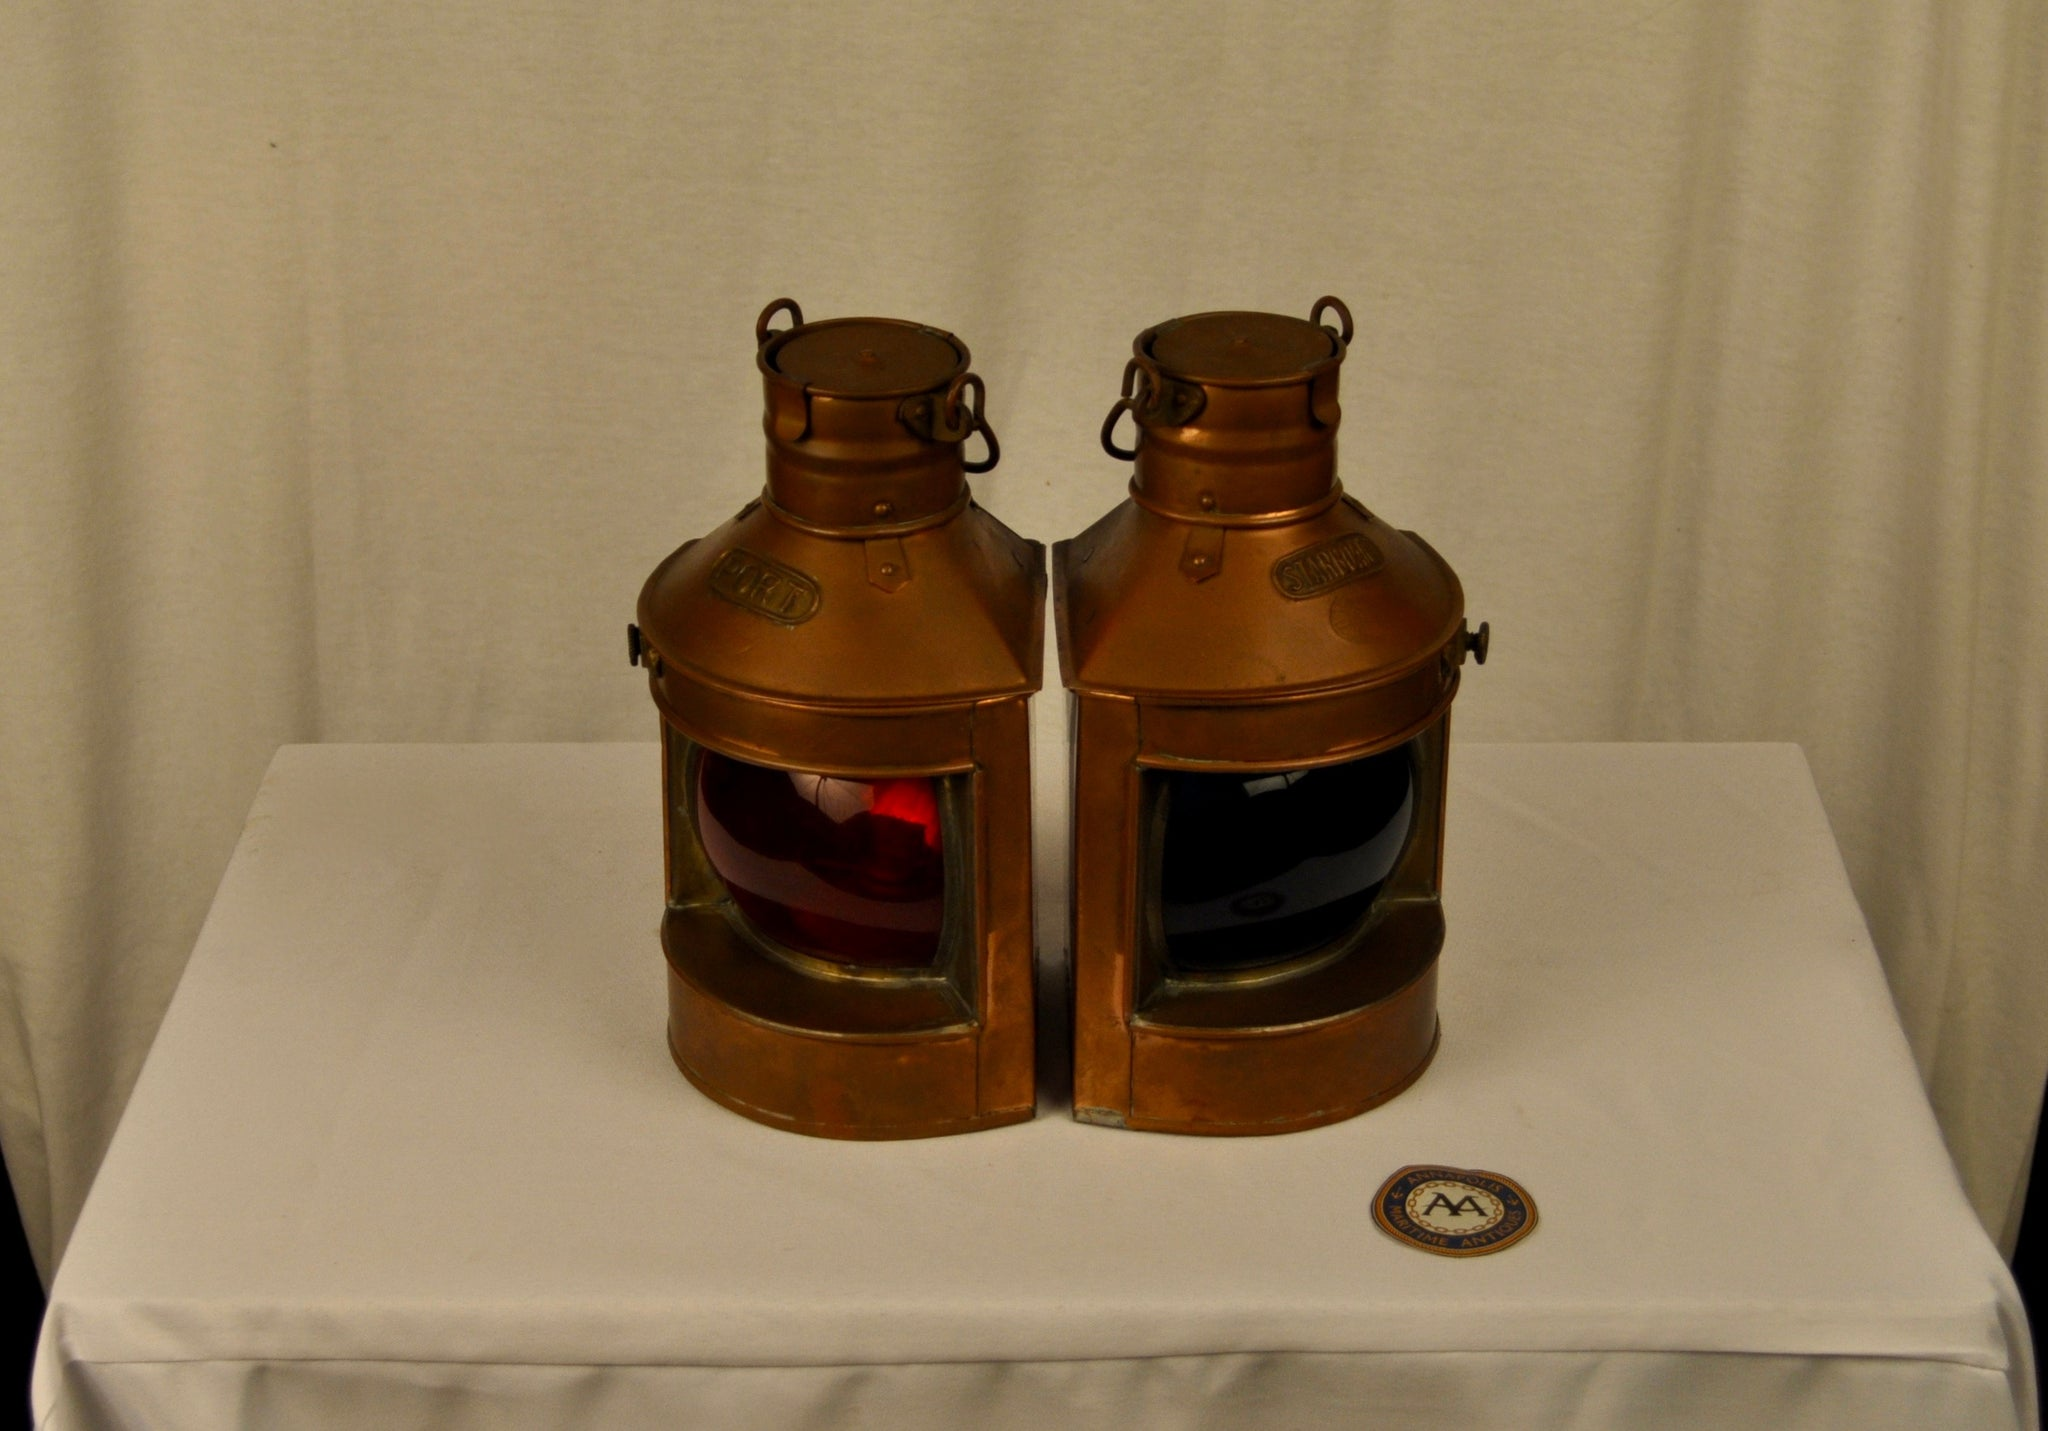 Lanterns, Port and Starboard, Rounded Glass, Pair, Tung Woo